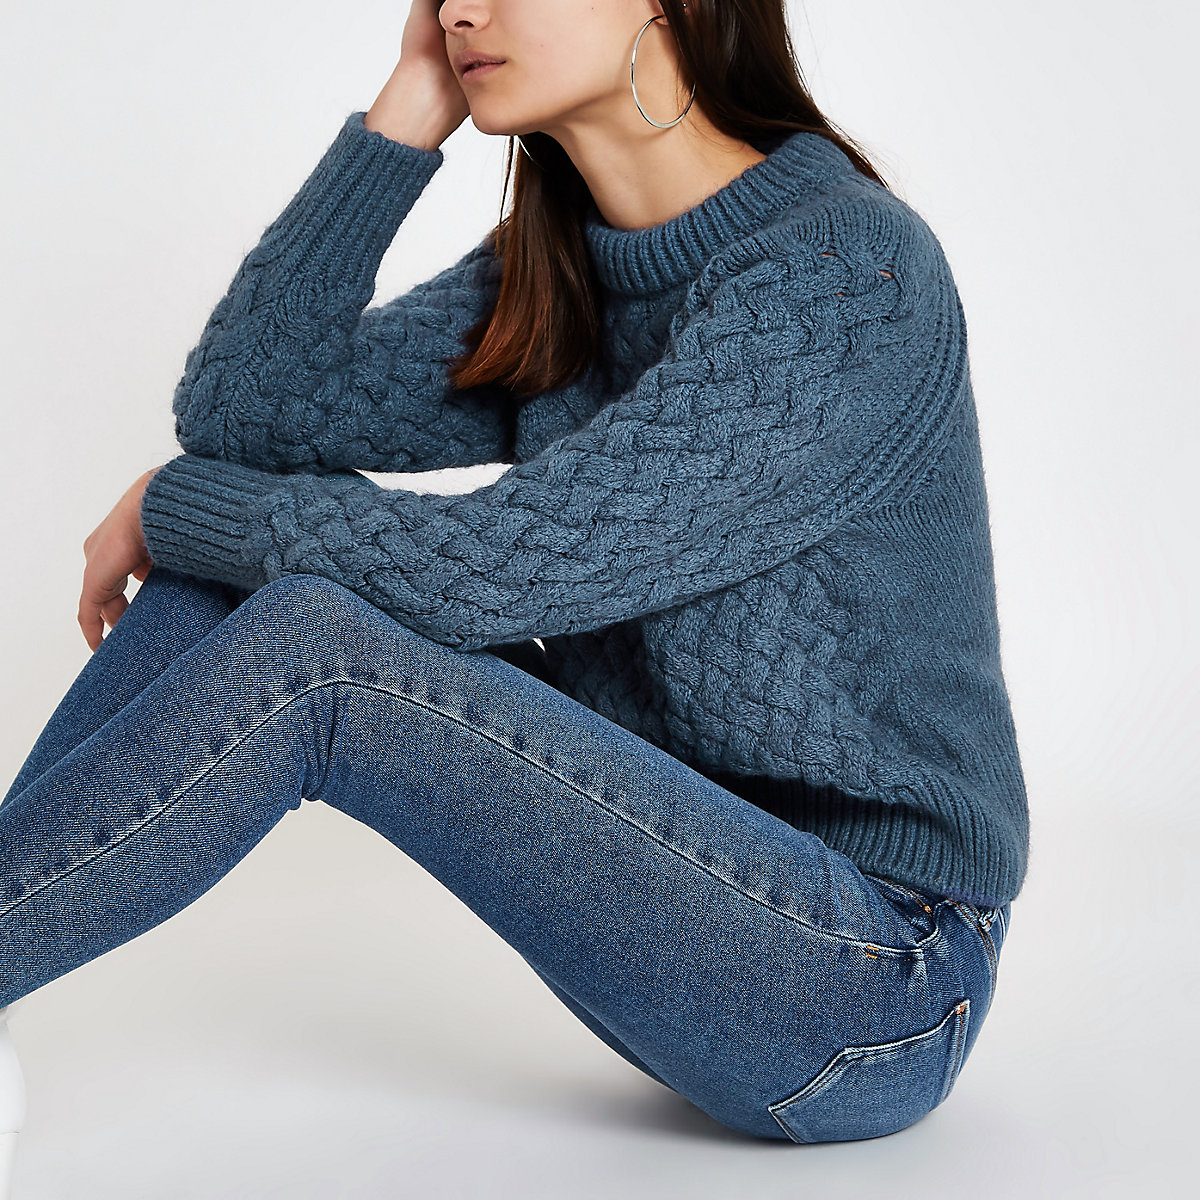 Blue cable knit long sleeve sweater